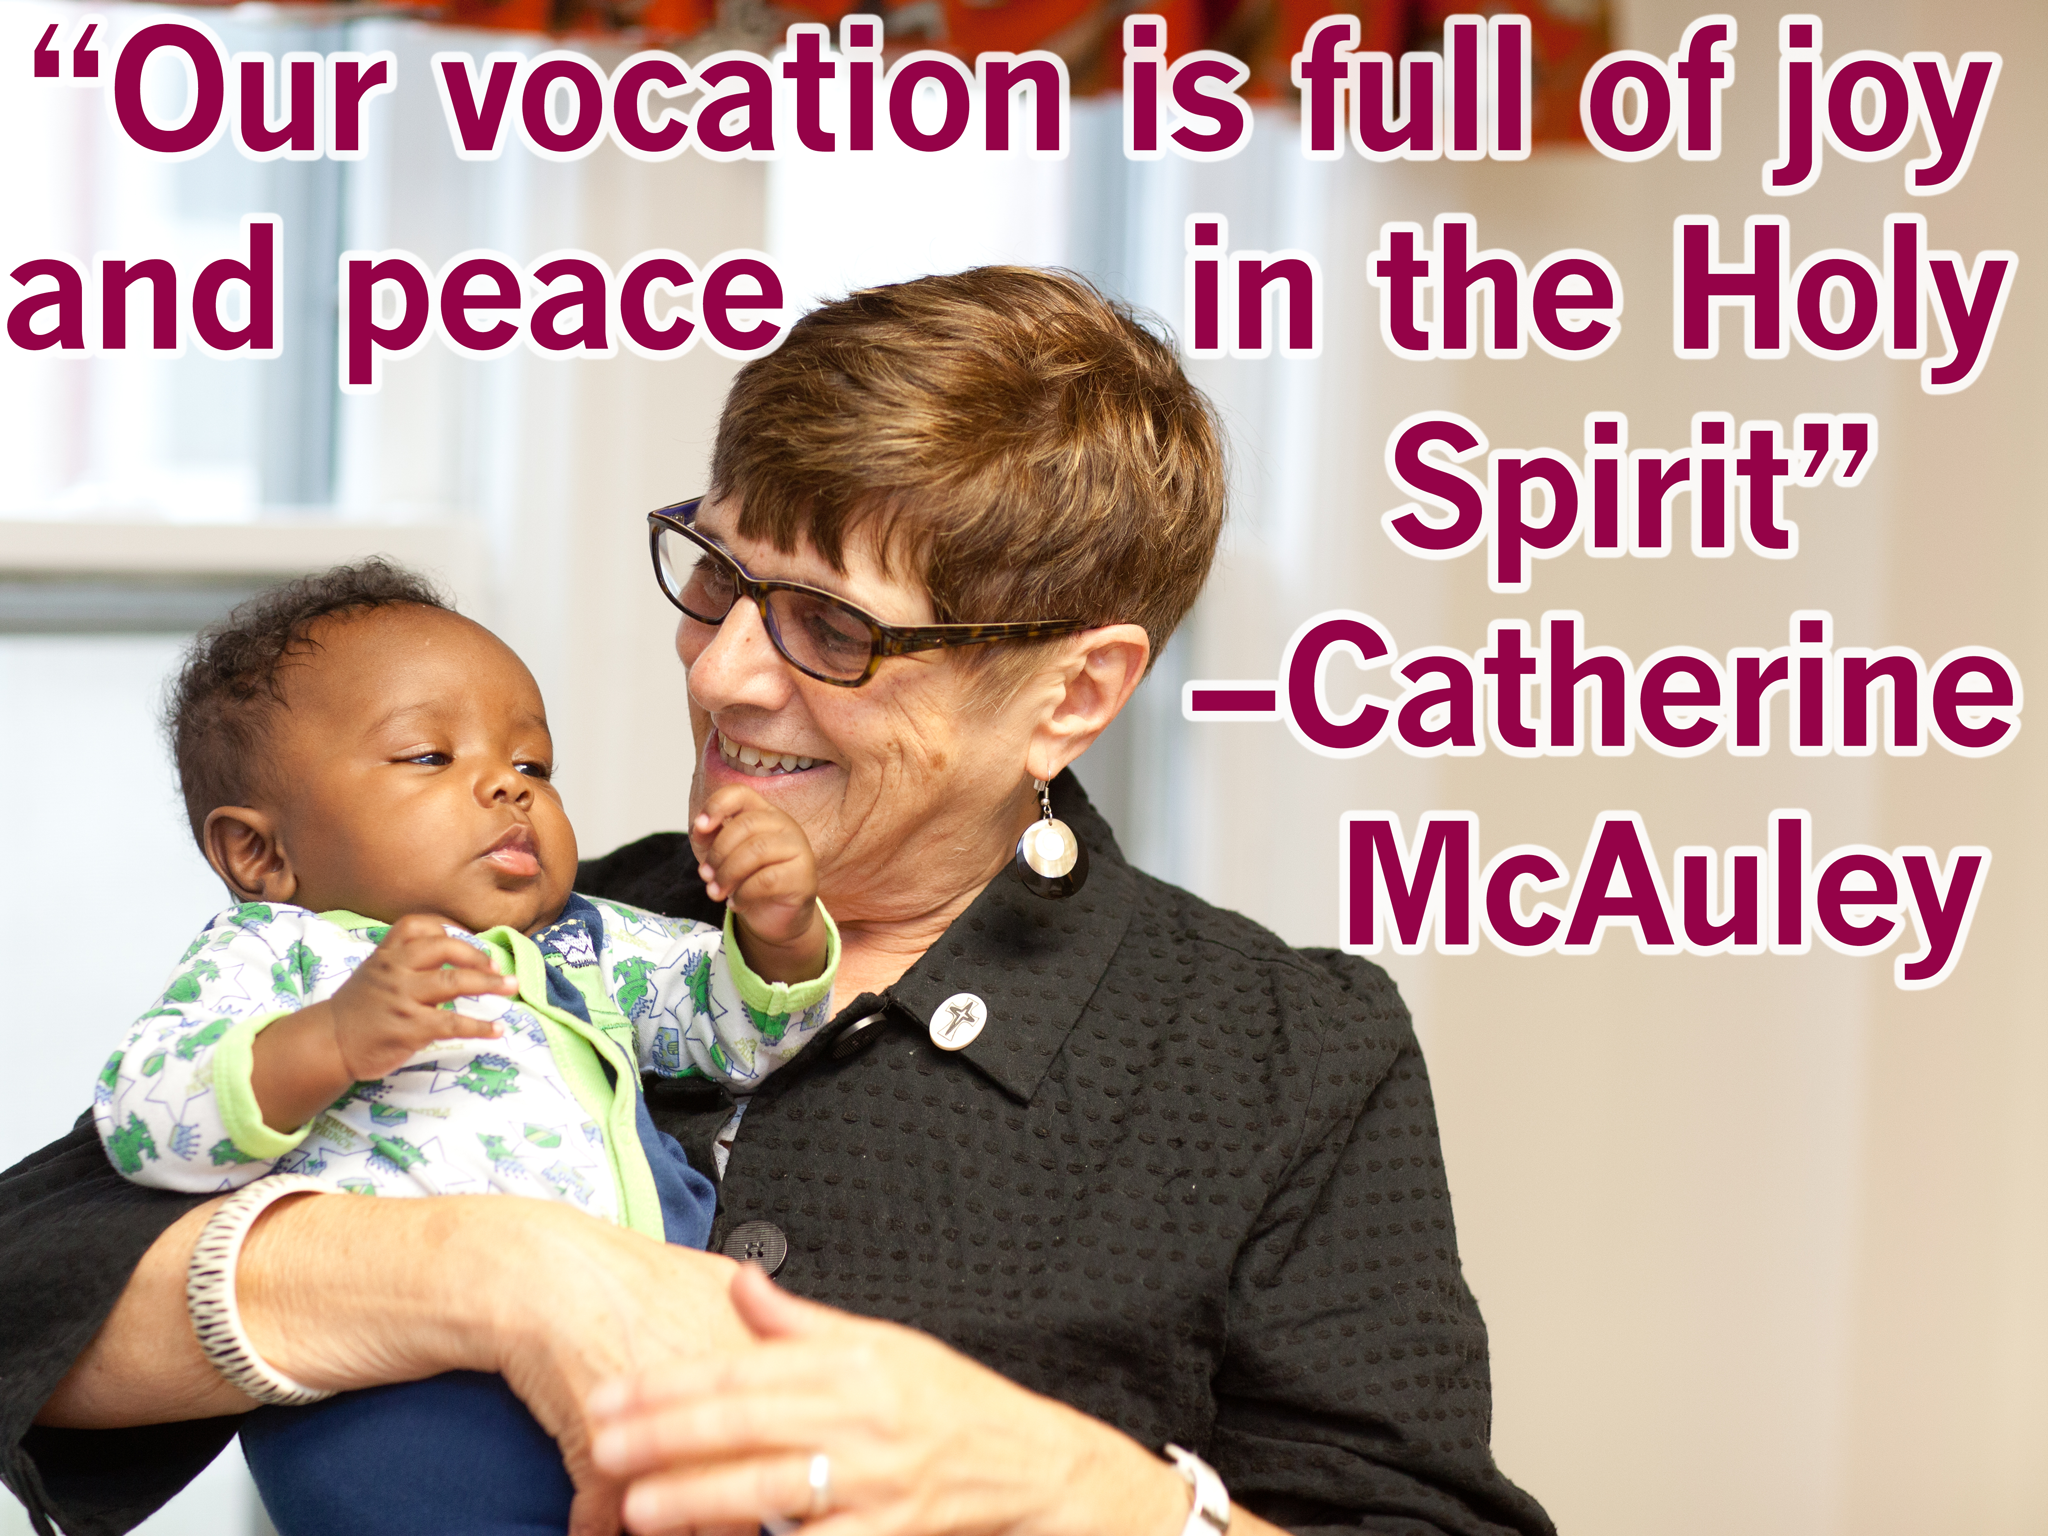 How did Catherine McAuley contribute to the community?